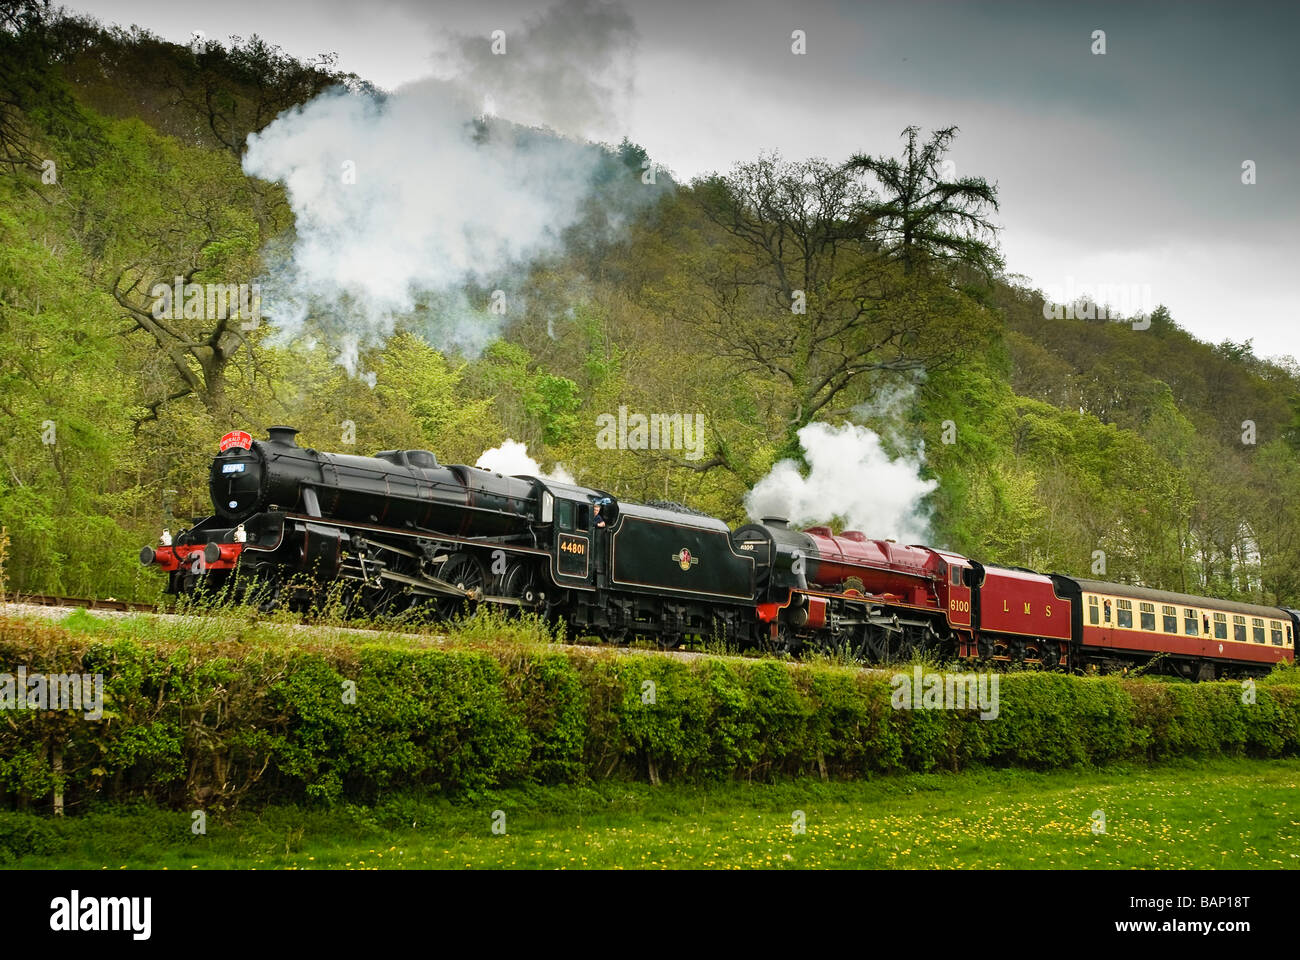 The engine Royal Scot Ex LMS 4 6 0 No 6100 built in 1930 double headed with a Stanier Black 5 loco No 44801 - Stock Image